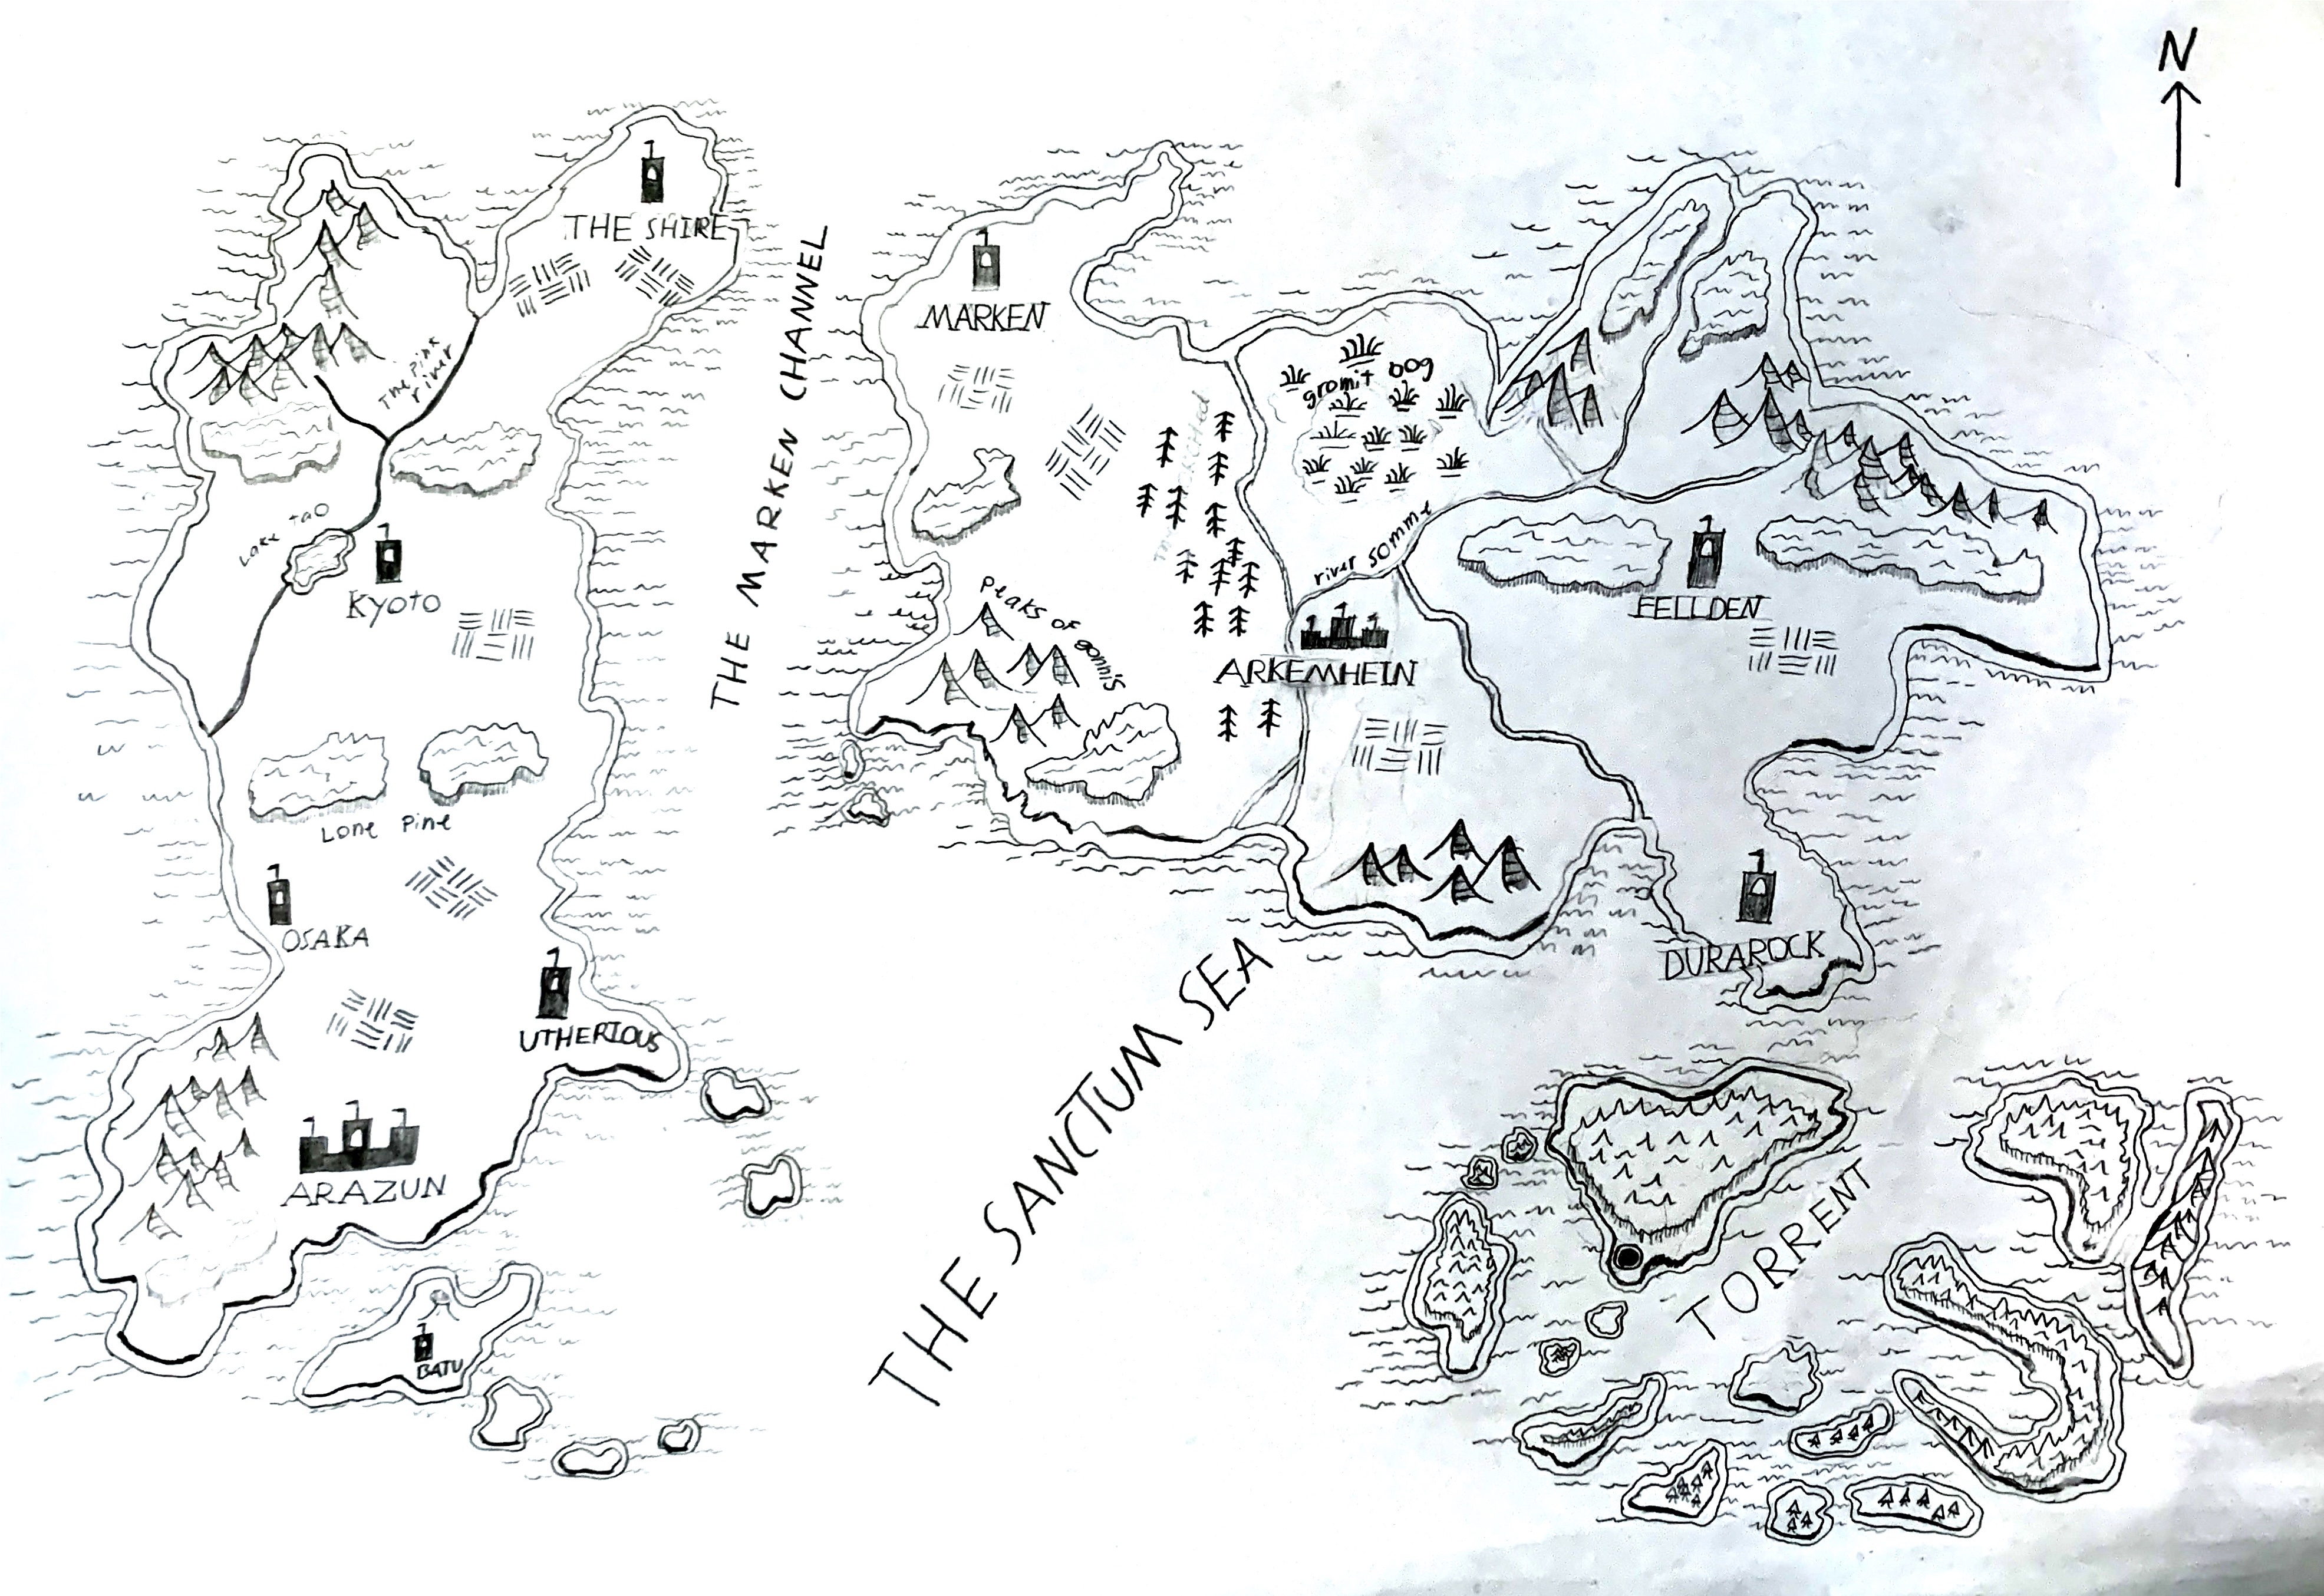 world map of velious in the return of the two spheres| World